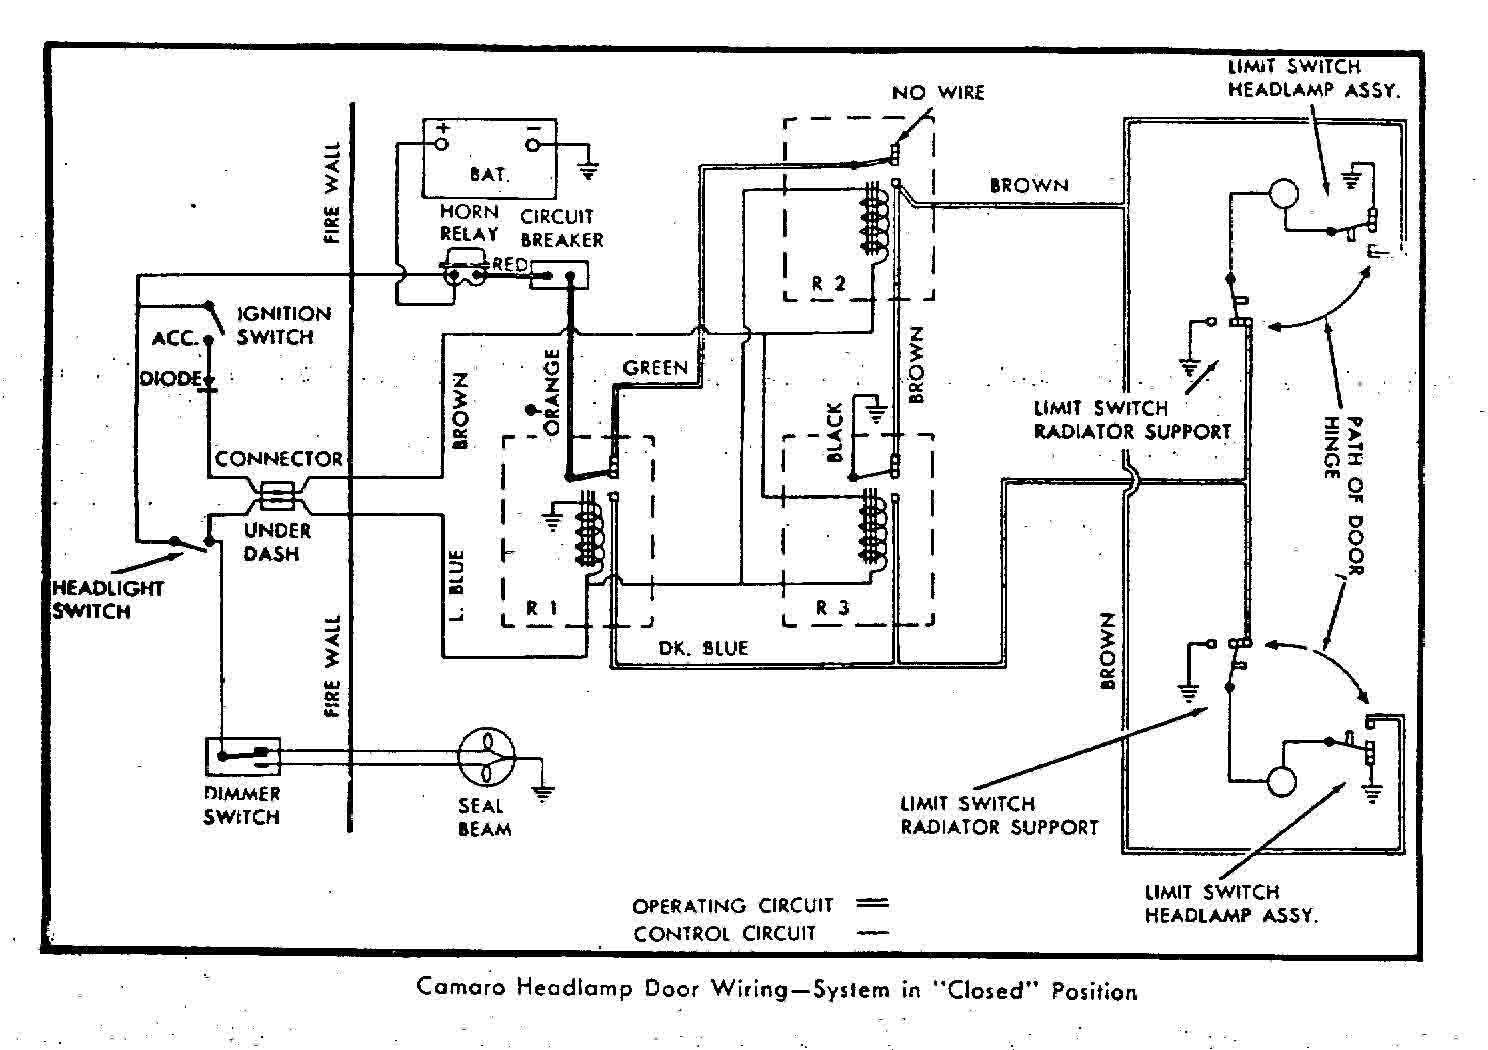 hight resolution of 1967 chevrolet fuse panel diagram wiring diagram article review 67 chevy camaro fuse box diagram free download